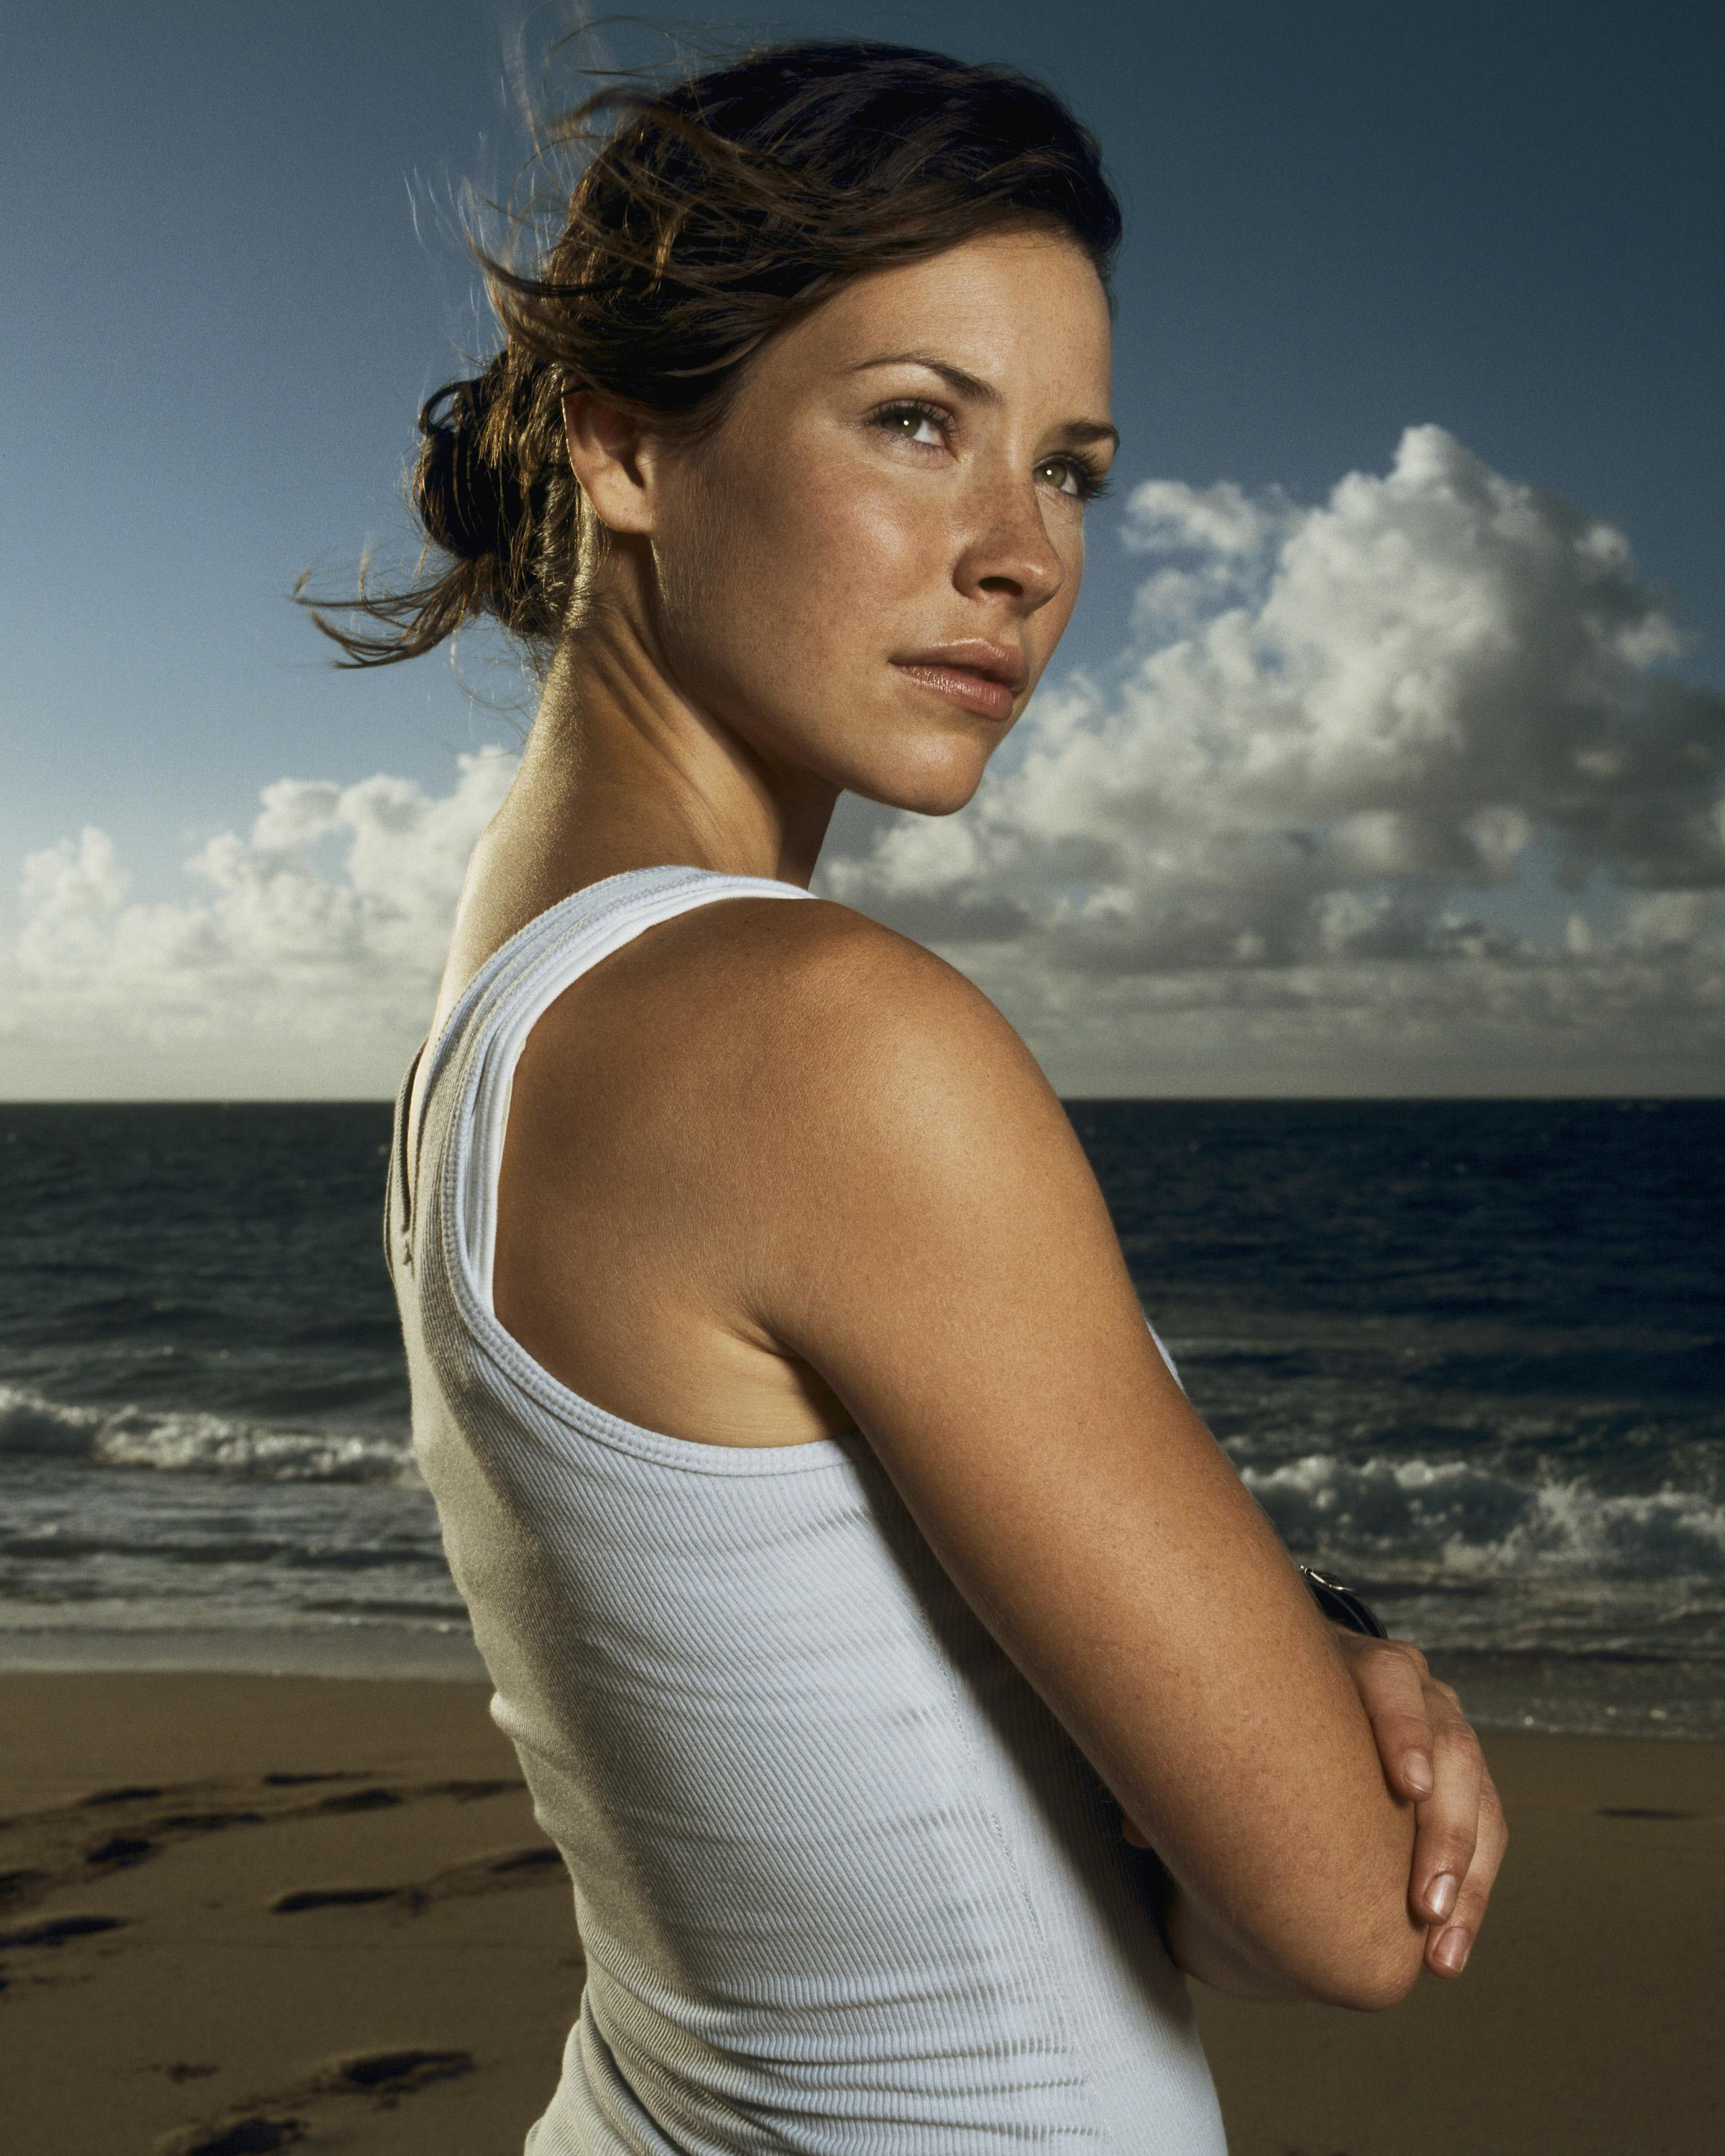 Evangeline lilly Celebrity HD Wallpaper